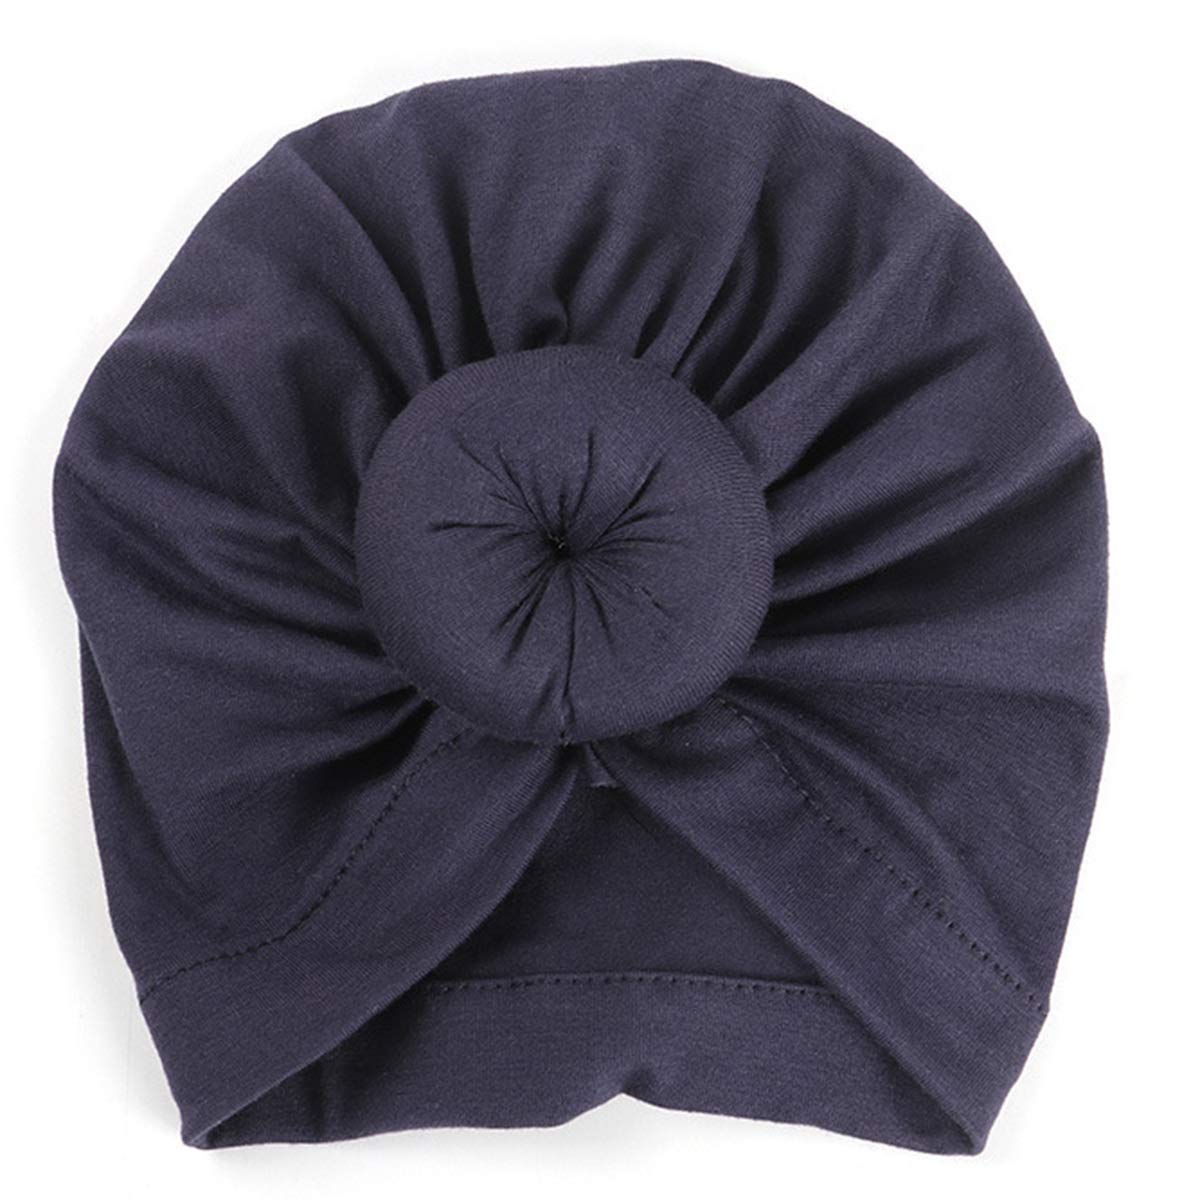 Leyeet Infant Toddler Baby Cap Cotton Tie Knot India Hat Indian Style Beanie Cap Winter Warm Headwear Turban Accessories Color : Navy Blue